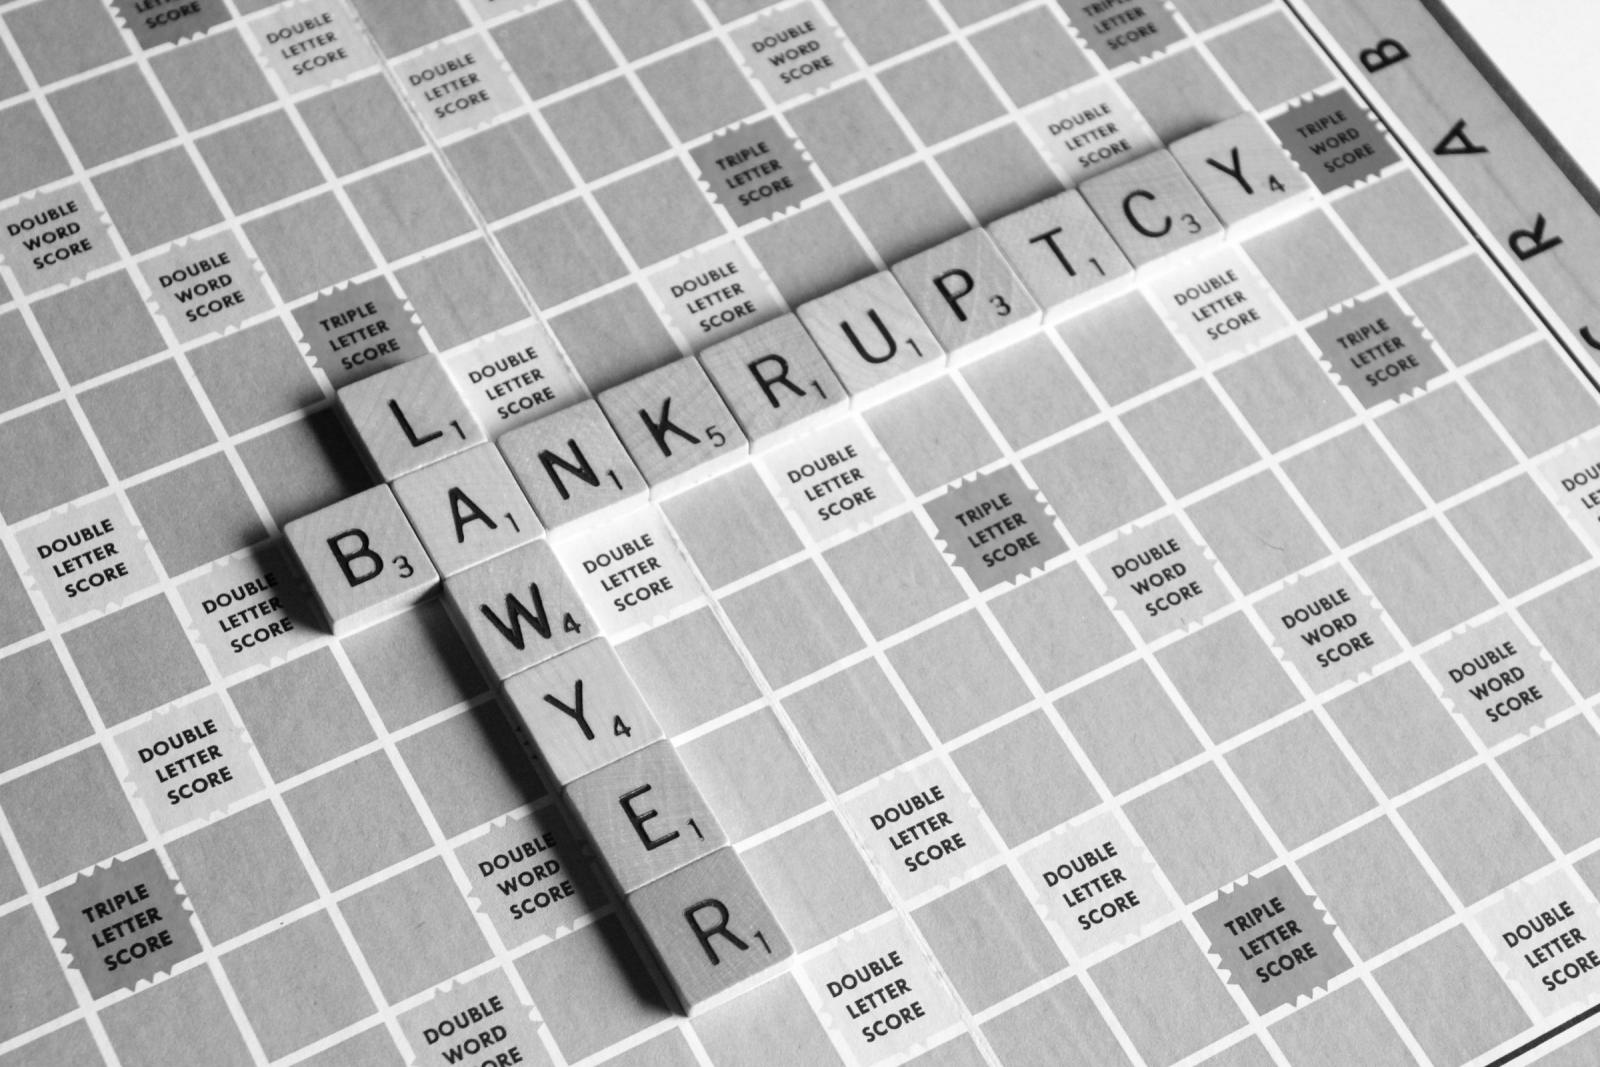 Bankruptcy Lawyer Scrabble Concept